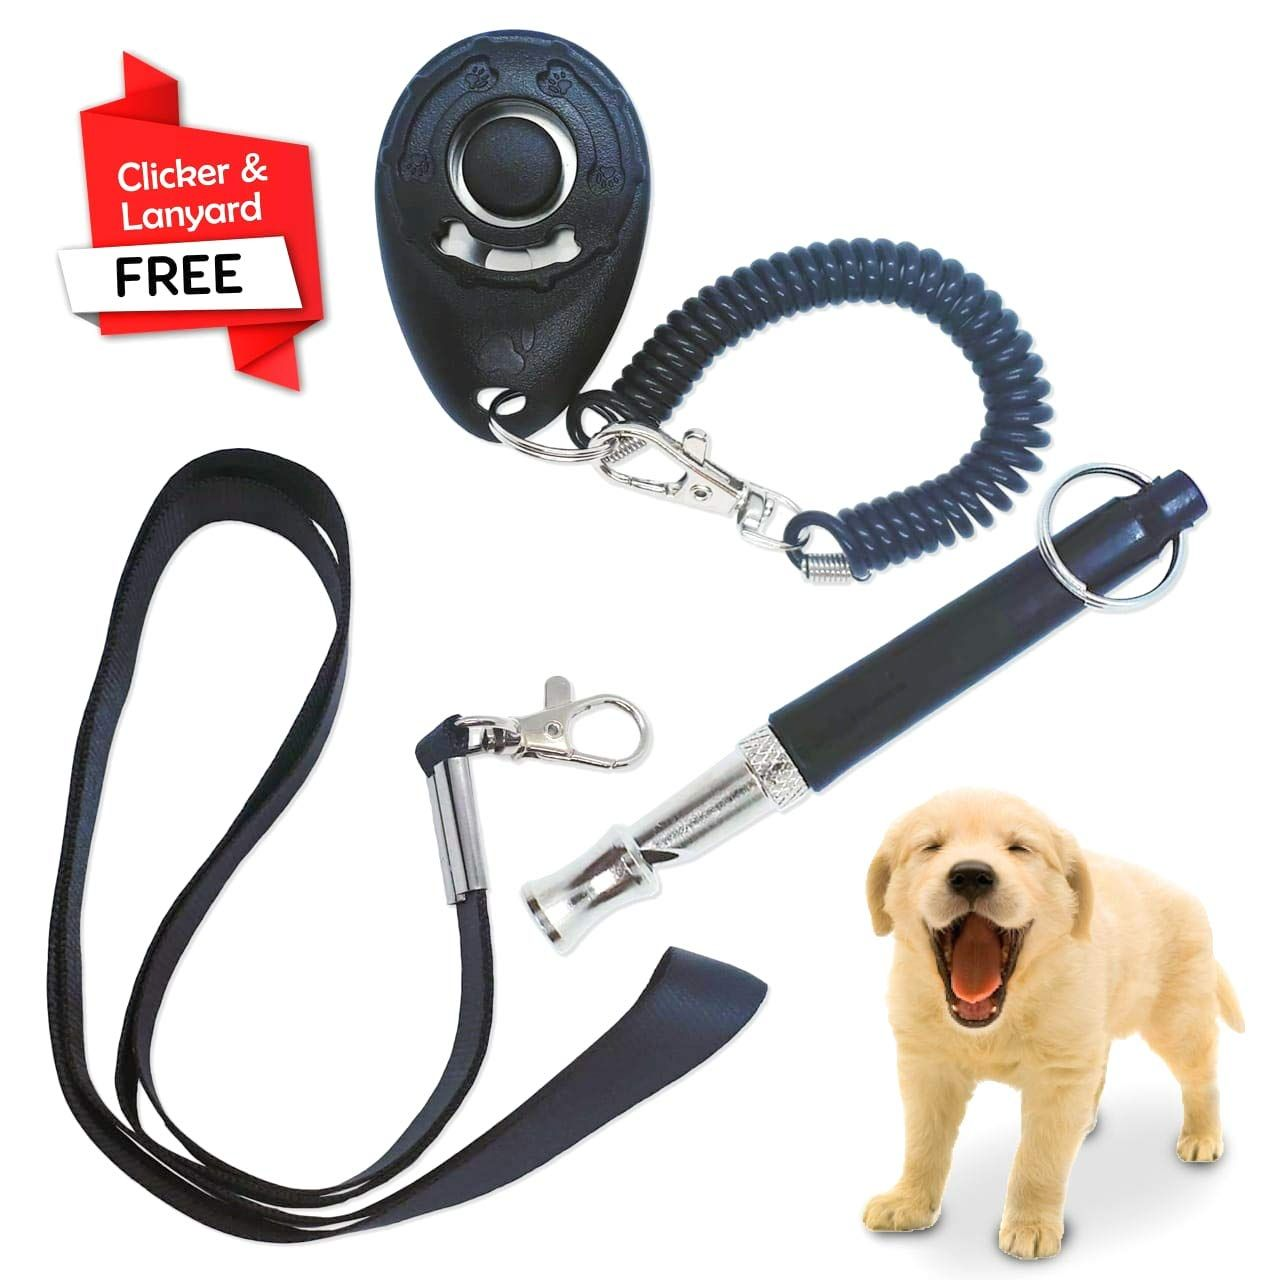 Naturalessence 11035 Dog Whistle Professional Free Dog Clicker